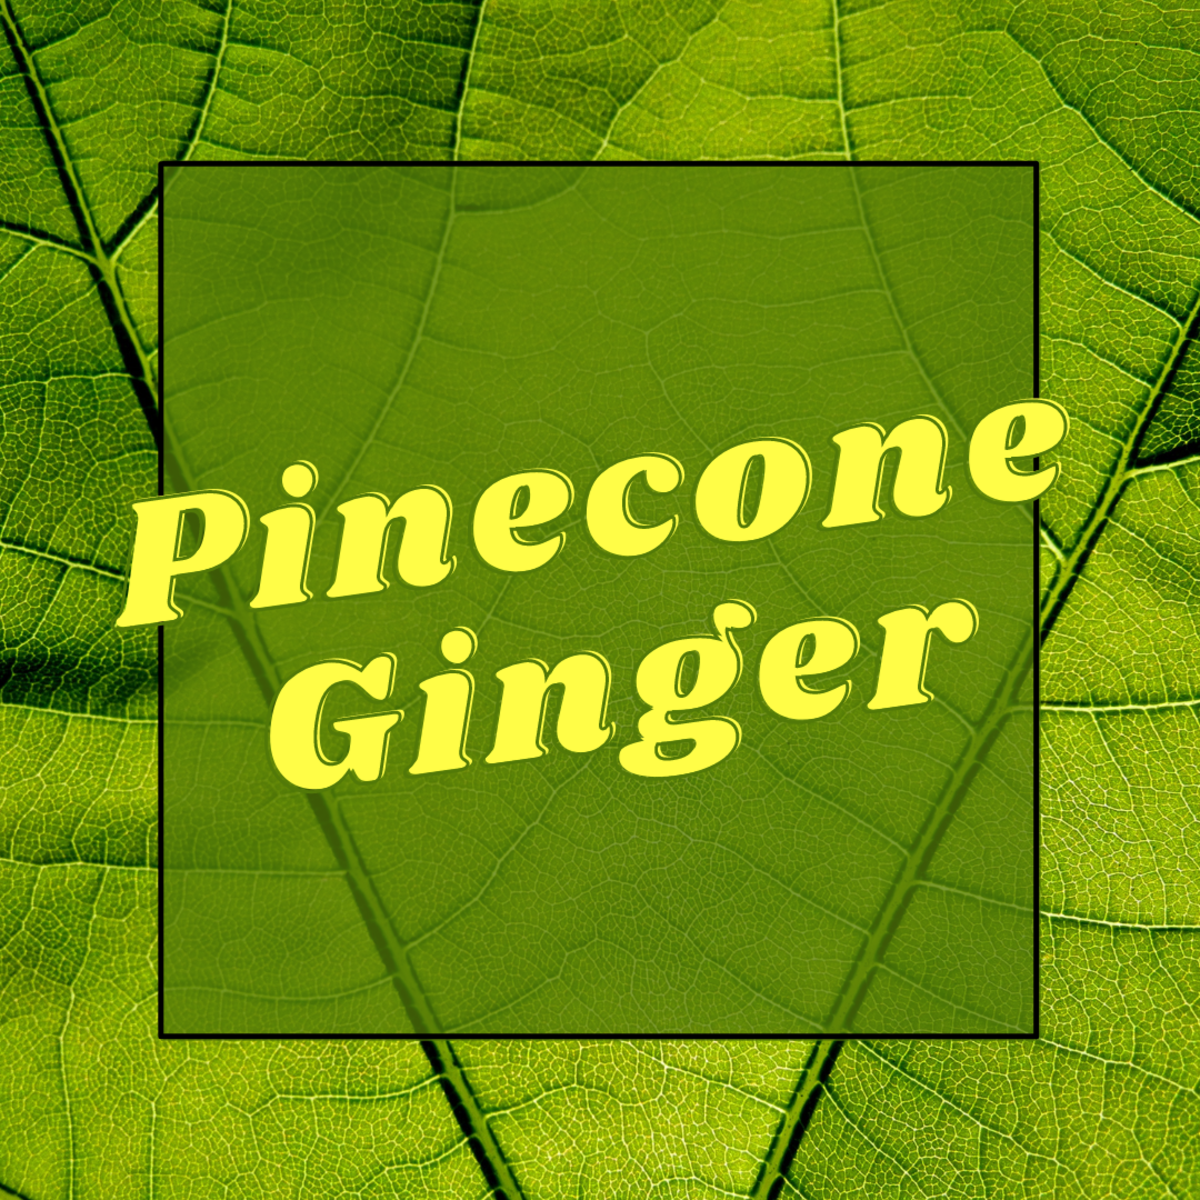 Learn some facts and uses of pinecone gnger